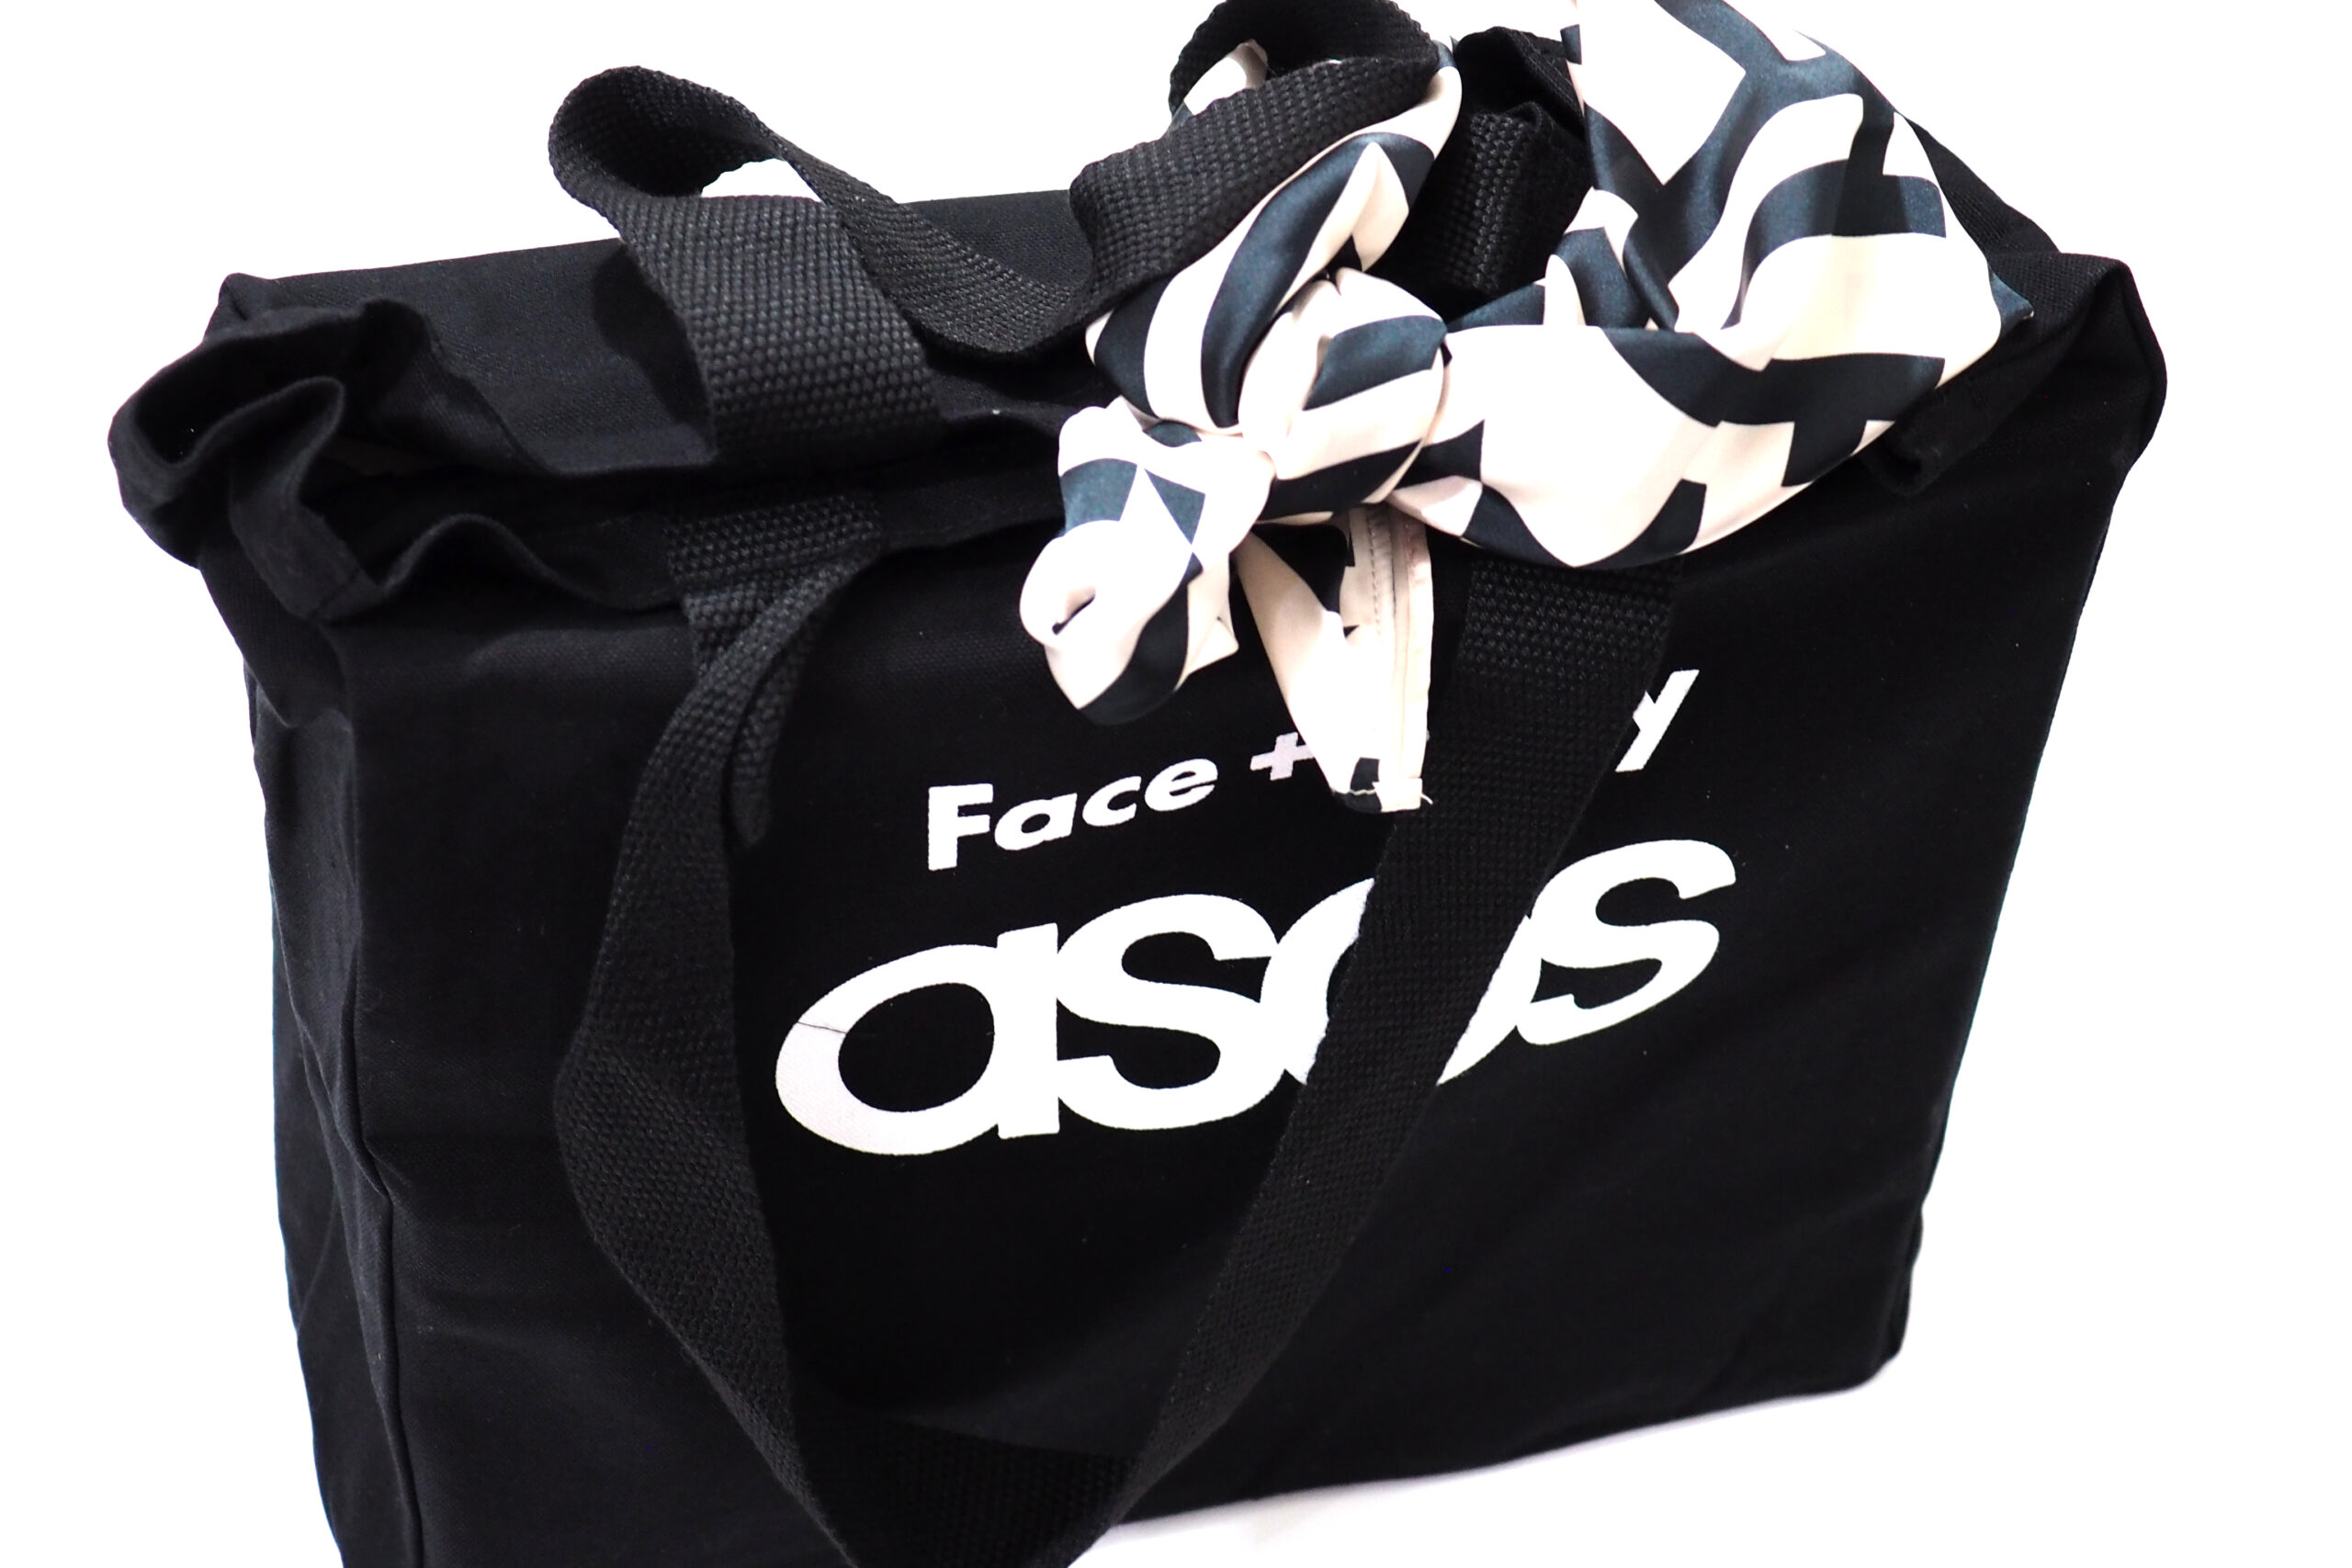 ASOS Face and Body 24 Day Advent Calendar 2021 Unboxing, Review Plus GIVEAWAY!